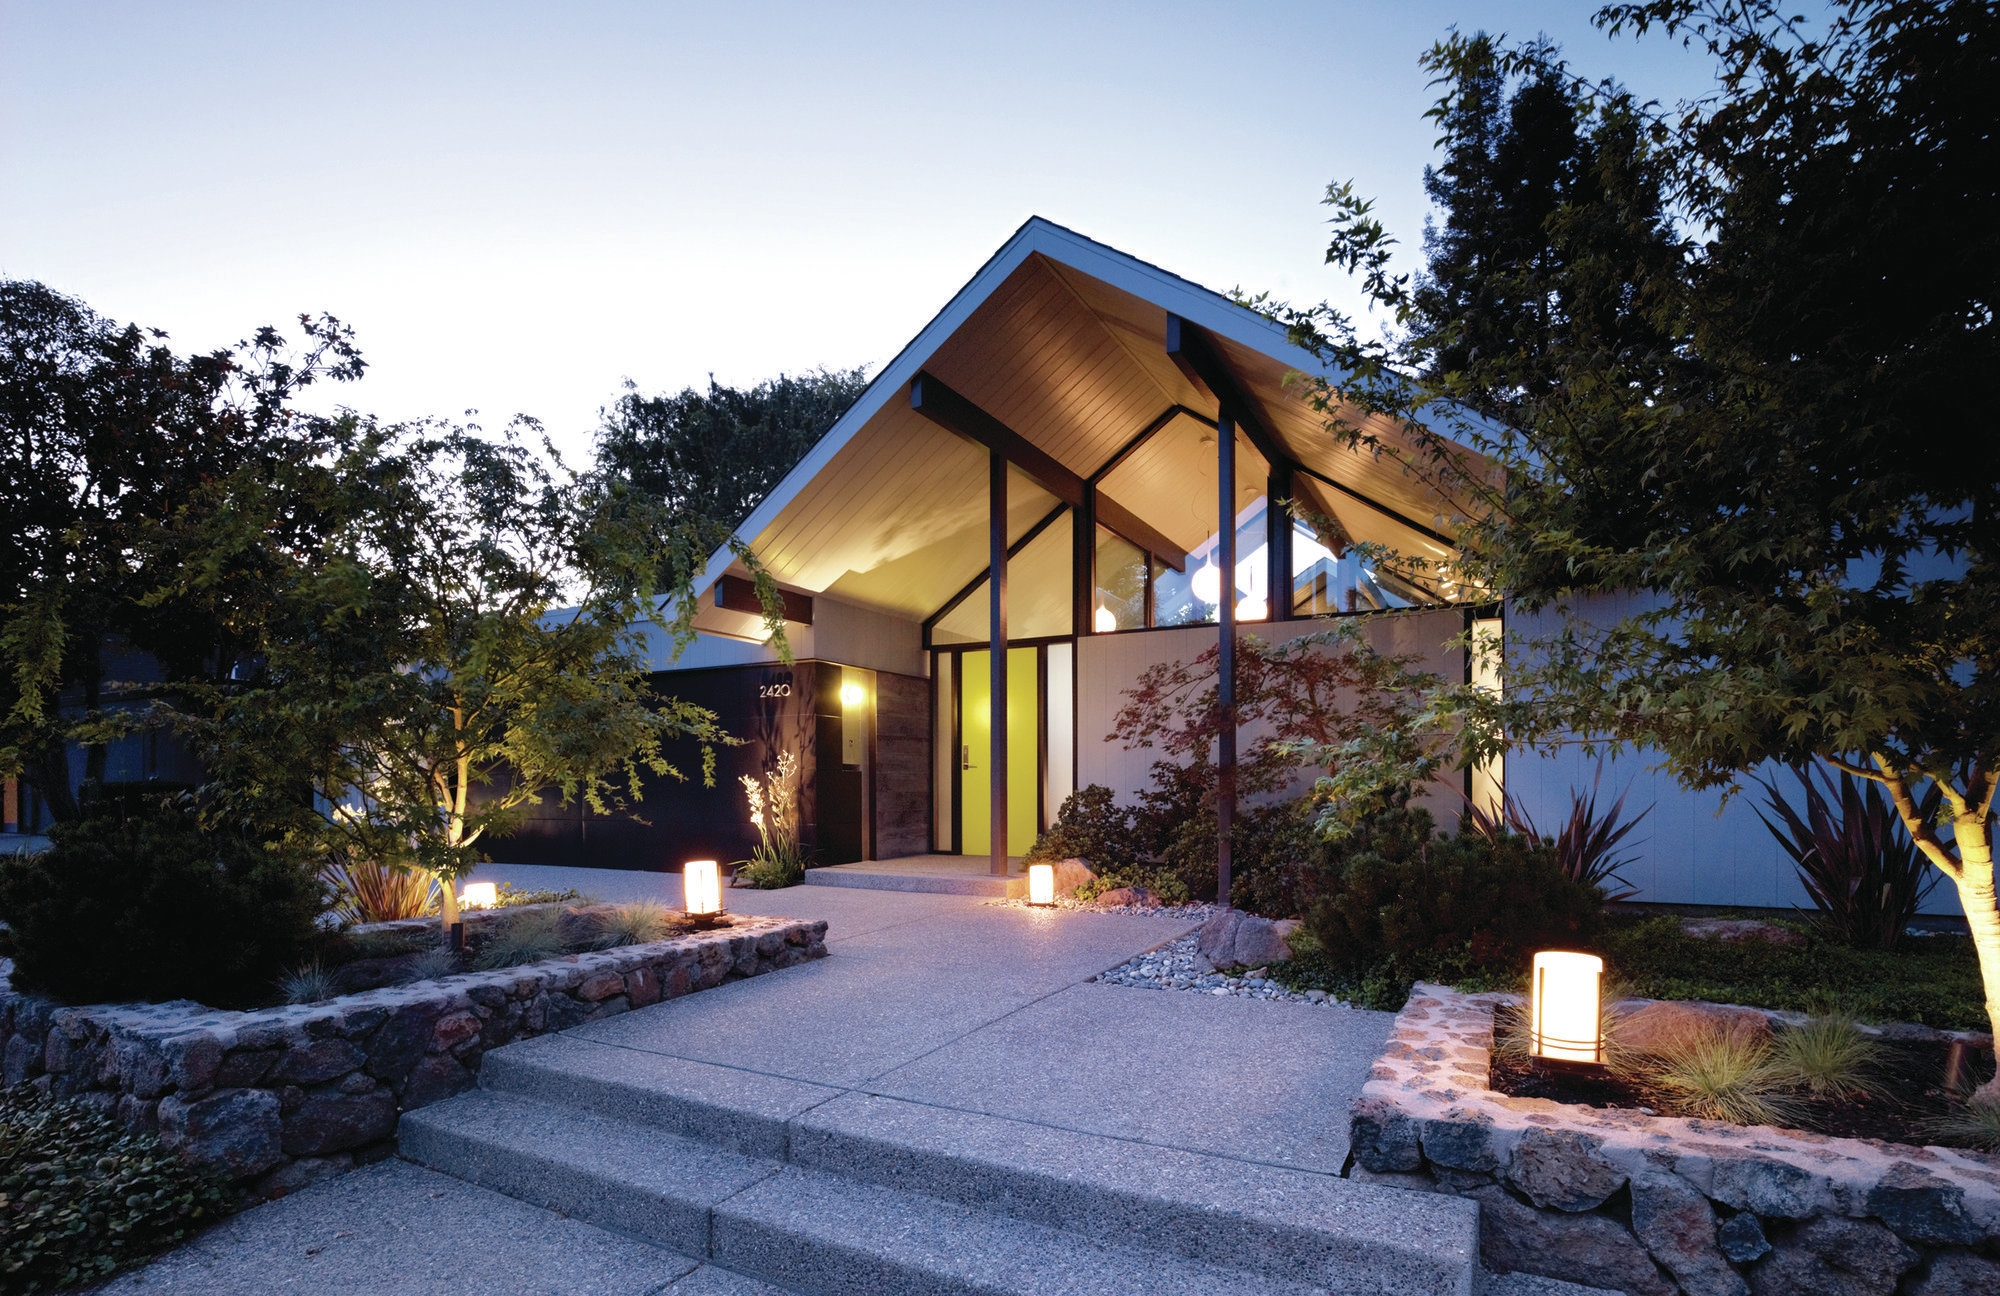 Home Design: Modernizing A Historic Eichler Home